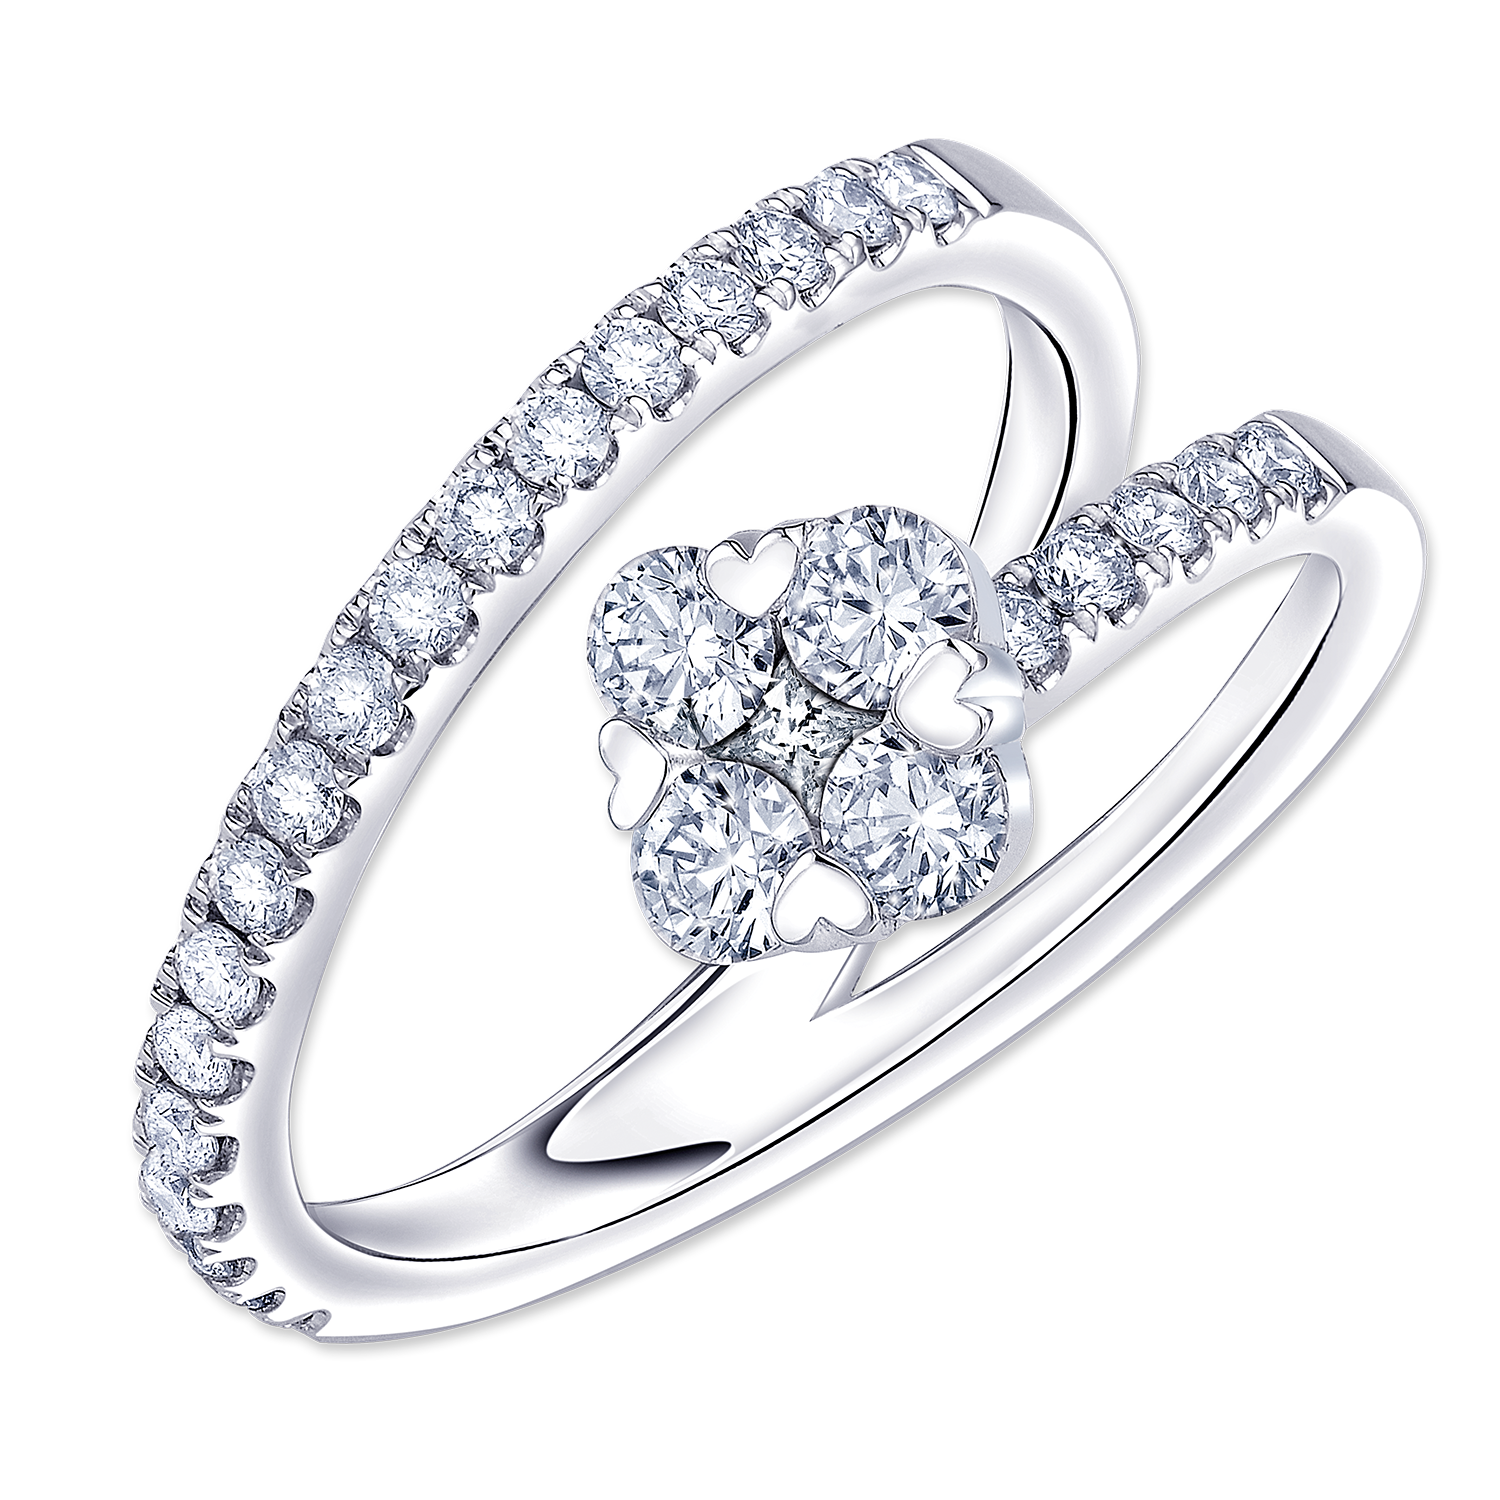 leo can search eng rings diamond you engagement kw madia wear art